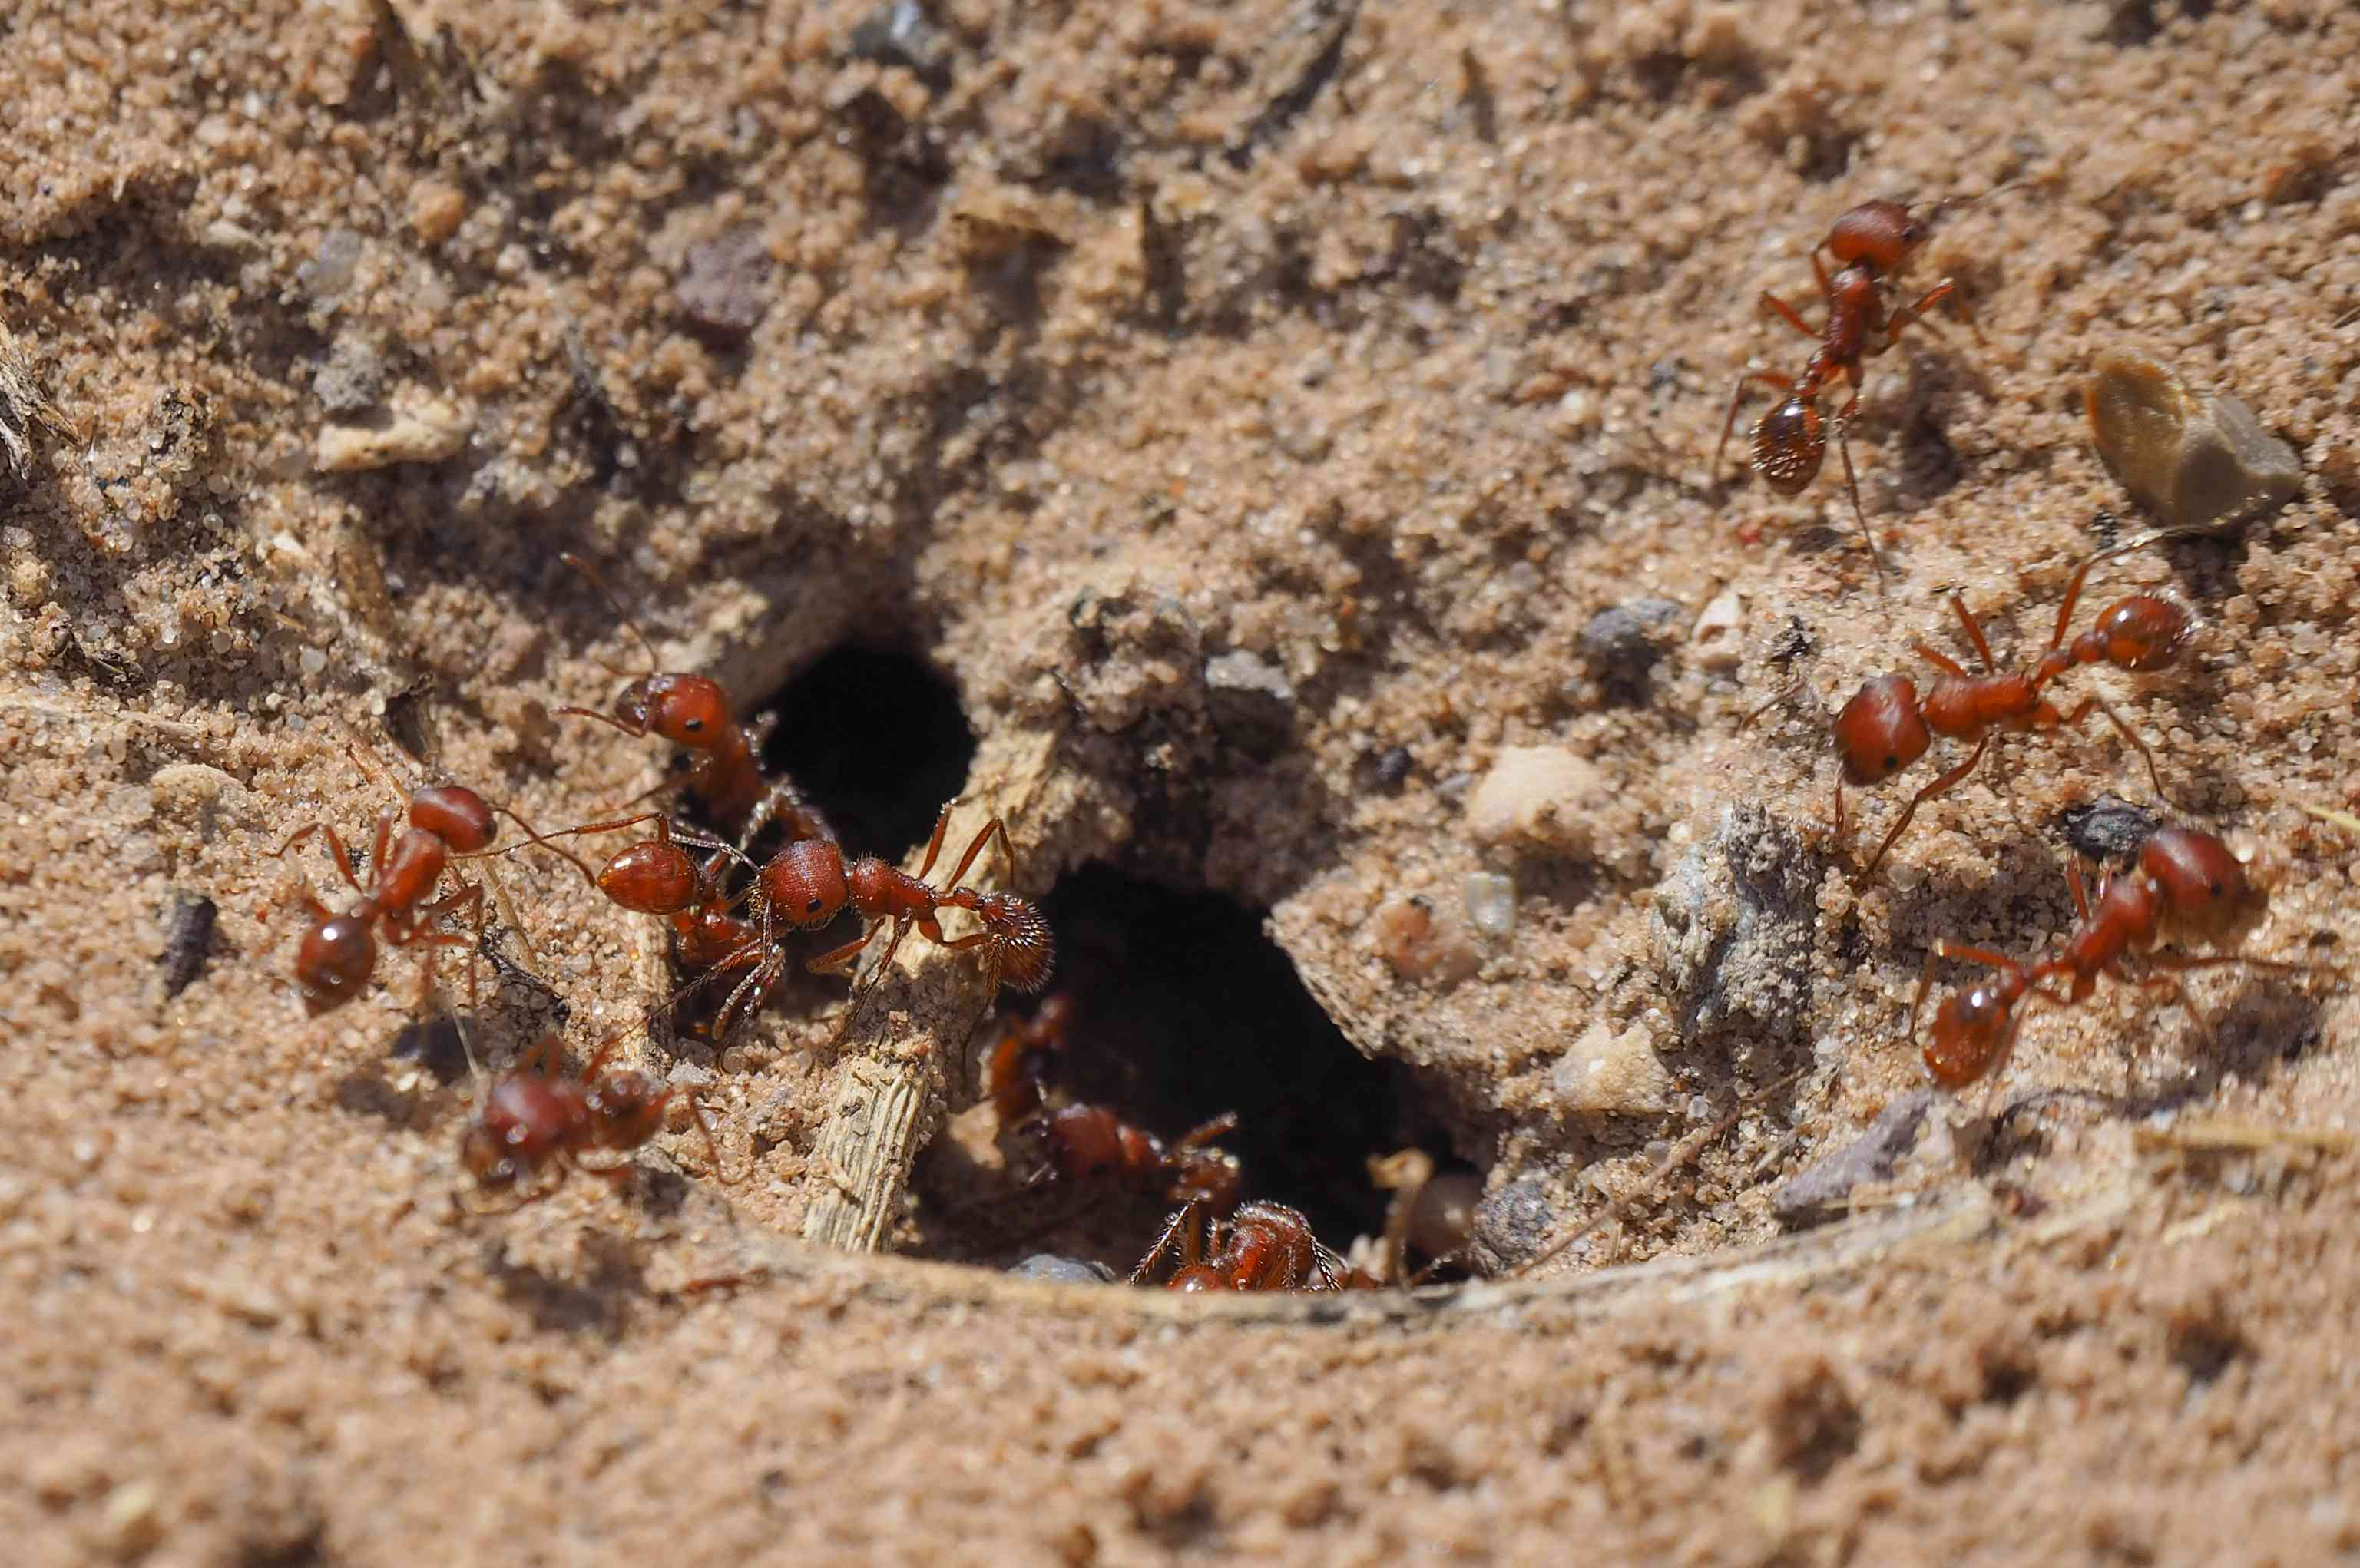 Close-up of red ants crawling in and out of an underground ant nest (California, USA)